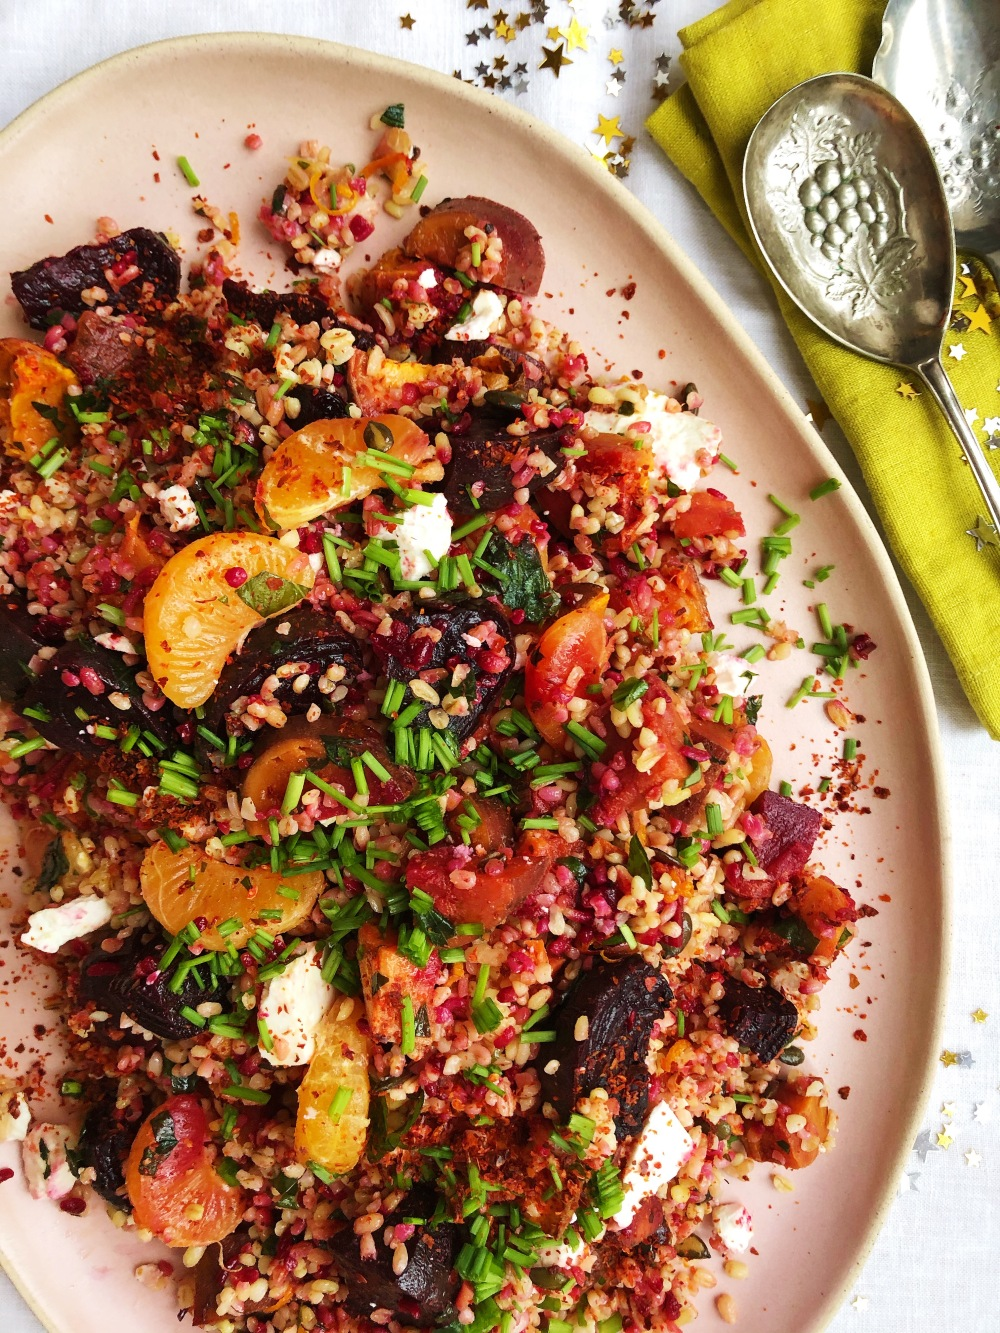 Grain, Beetroot and Celementine Salad